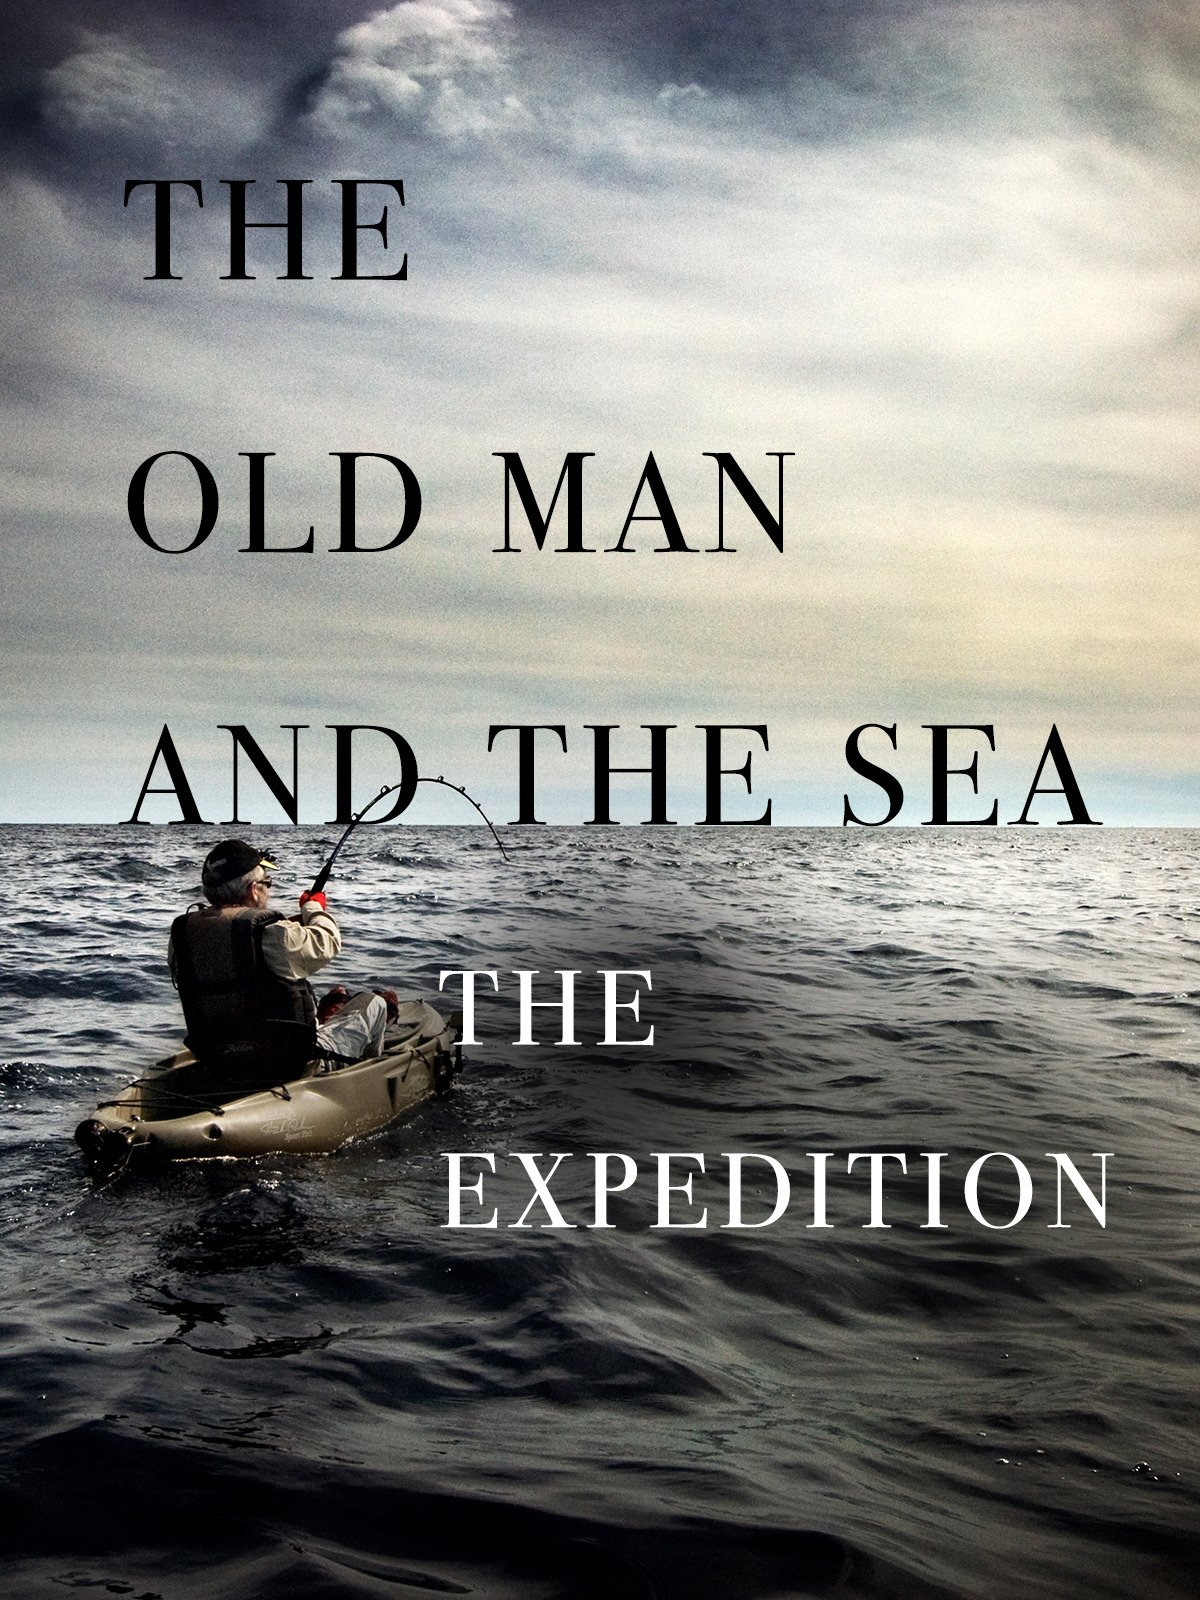 The Old Man and the Sea: The Expedition on Amazon Prime Video UK